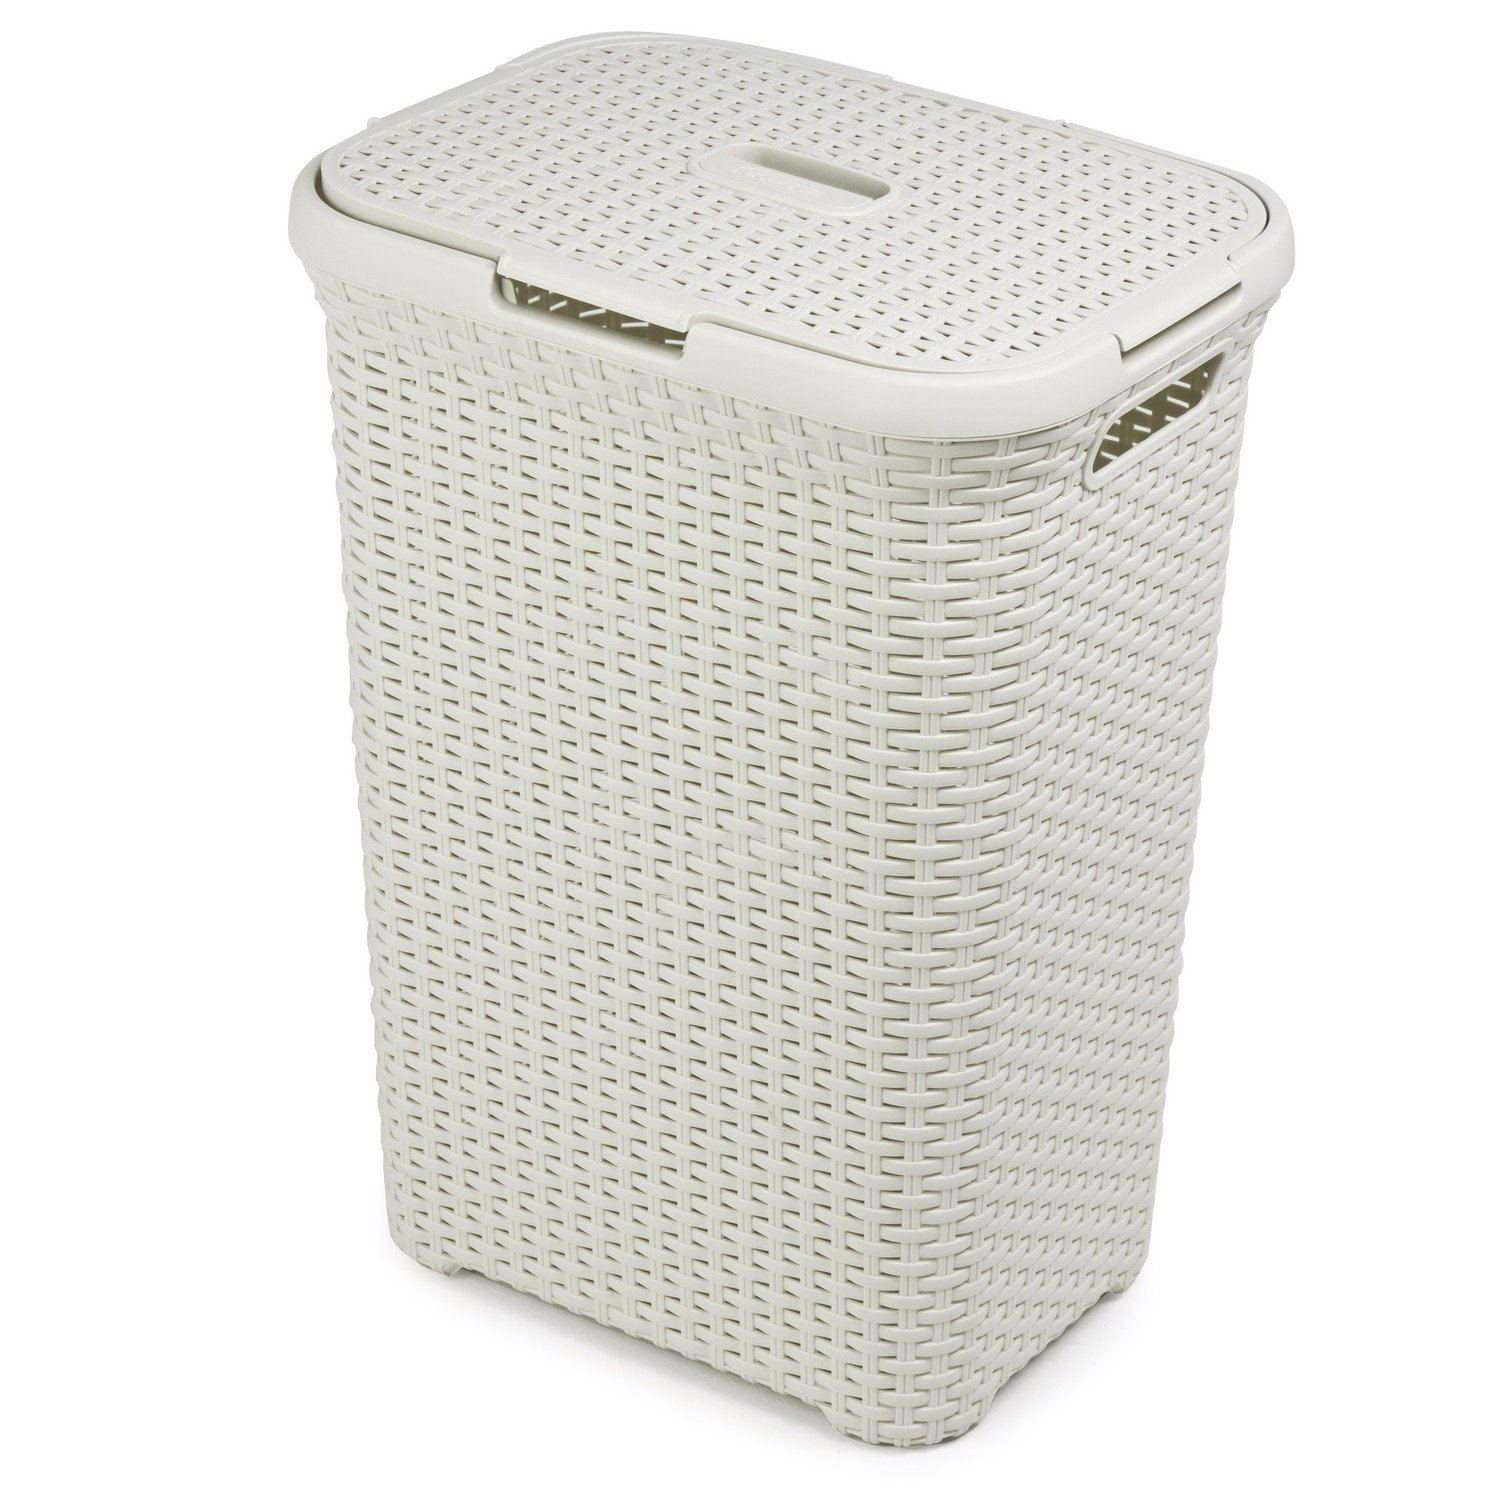 60 ltr rattan design laundry bin washing basket bucket White wicker washing basket